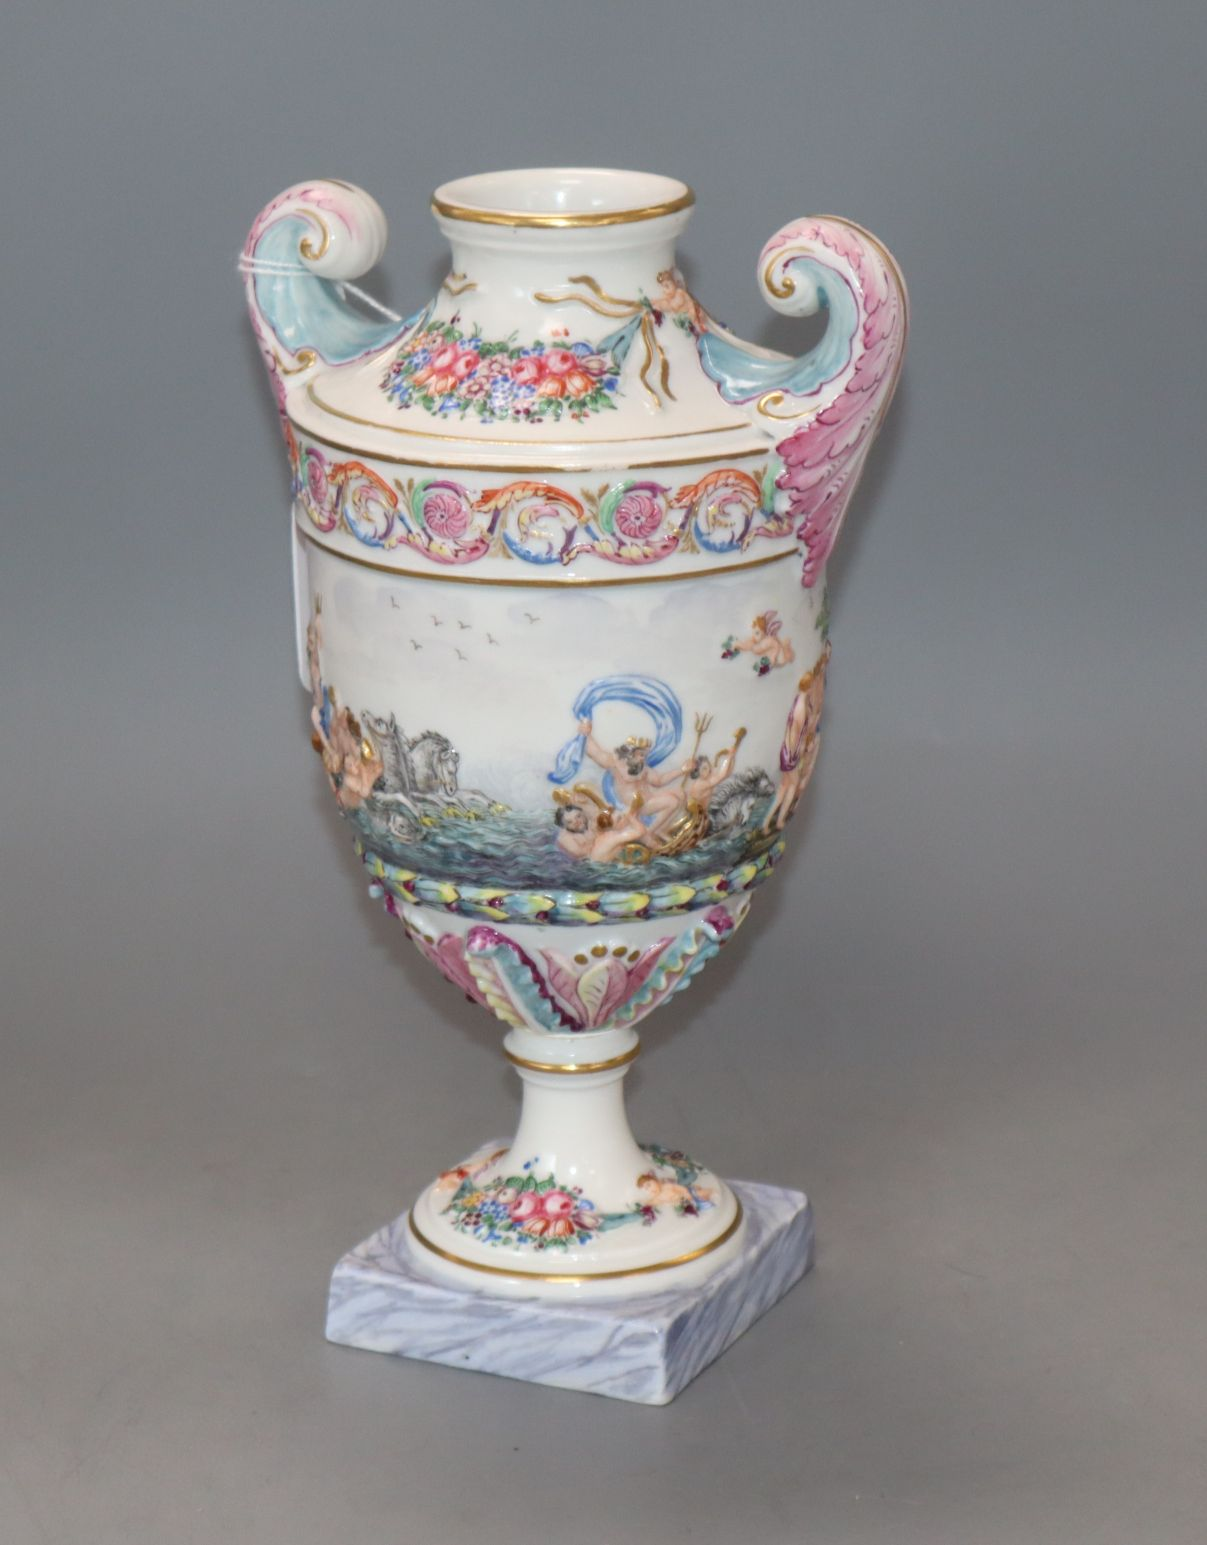 Lot 100 - A Richard Ginori, Doccia Naples-style vase height 24cm